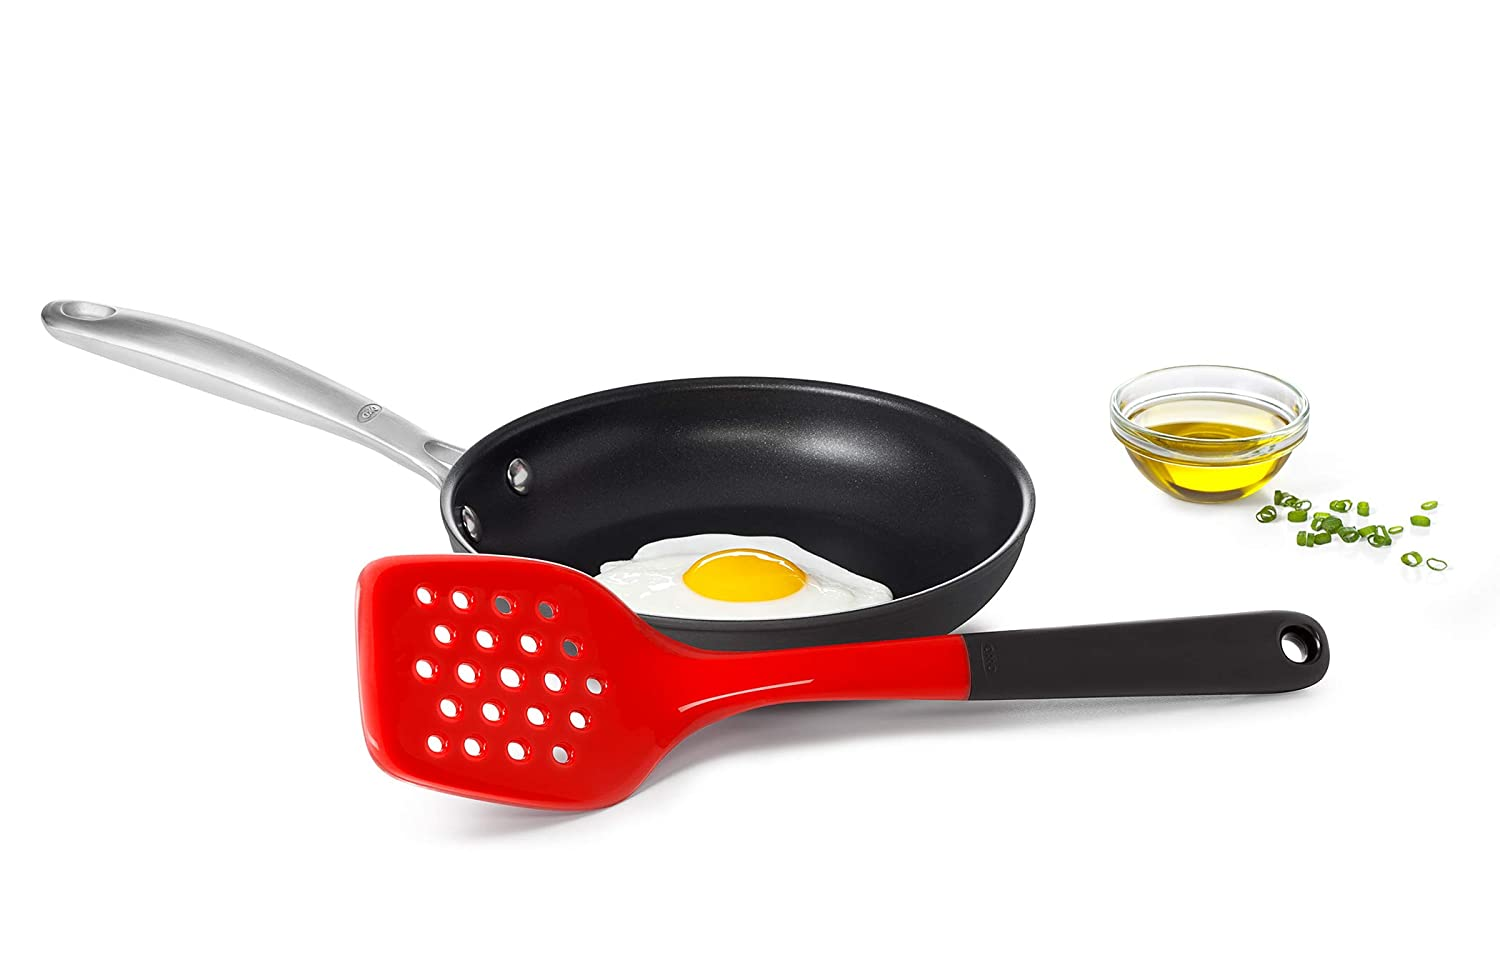 OXO Good Grips Silicone Saute Paddle 11181700